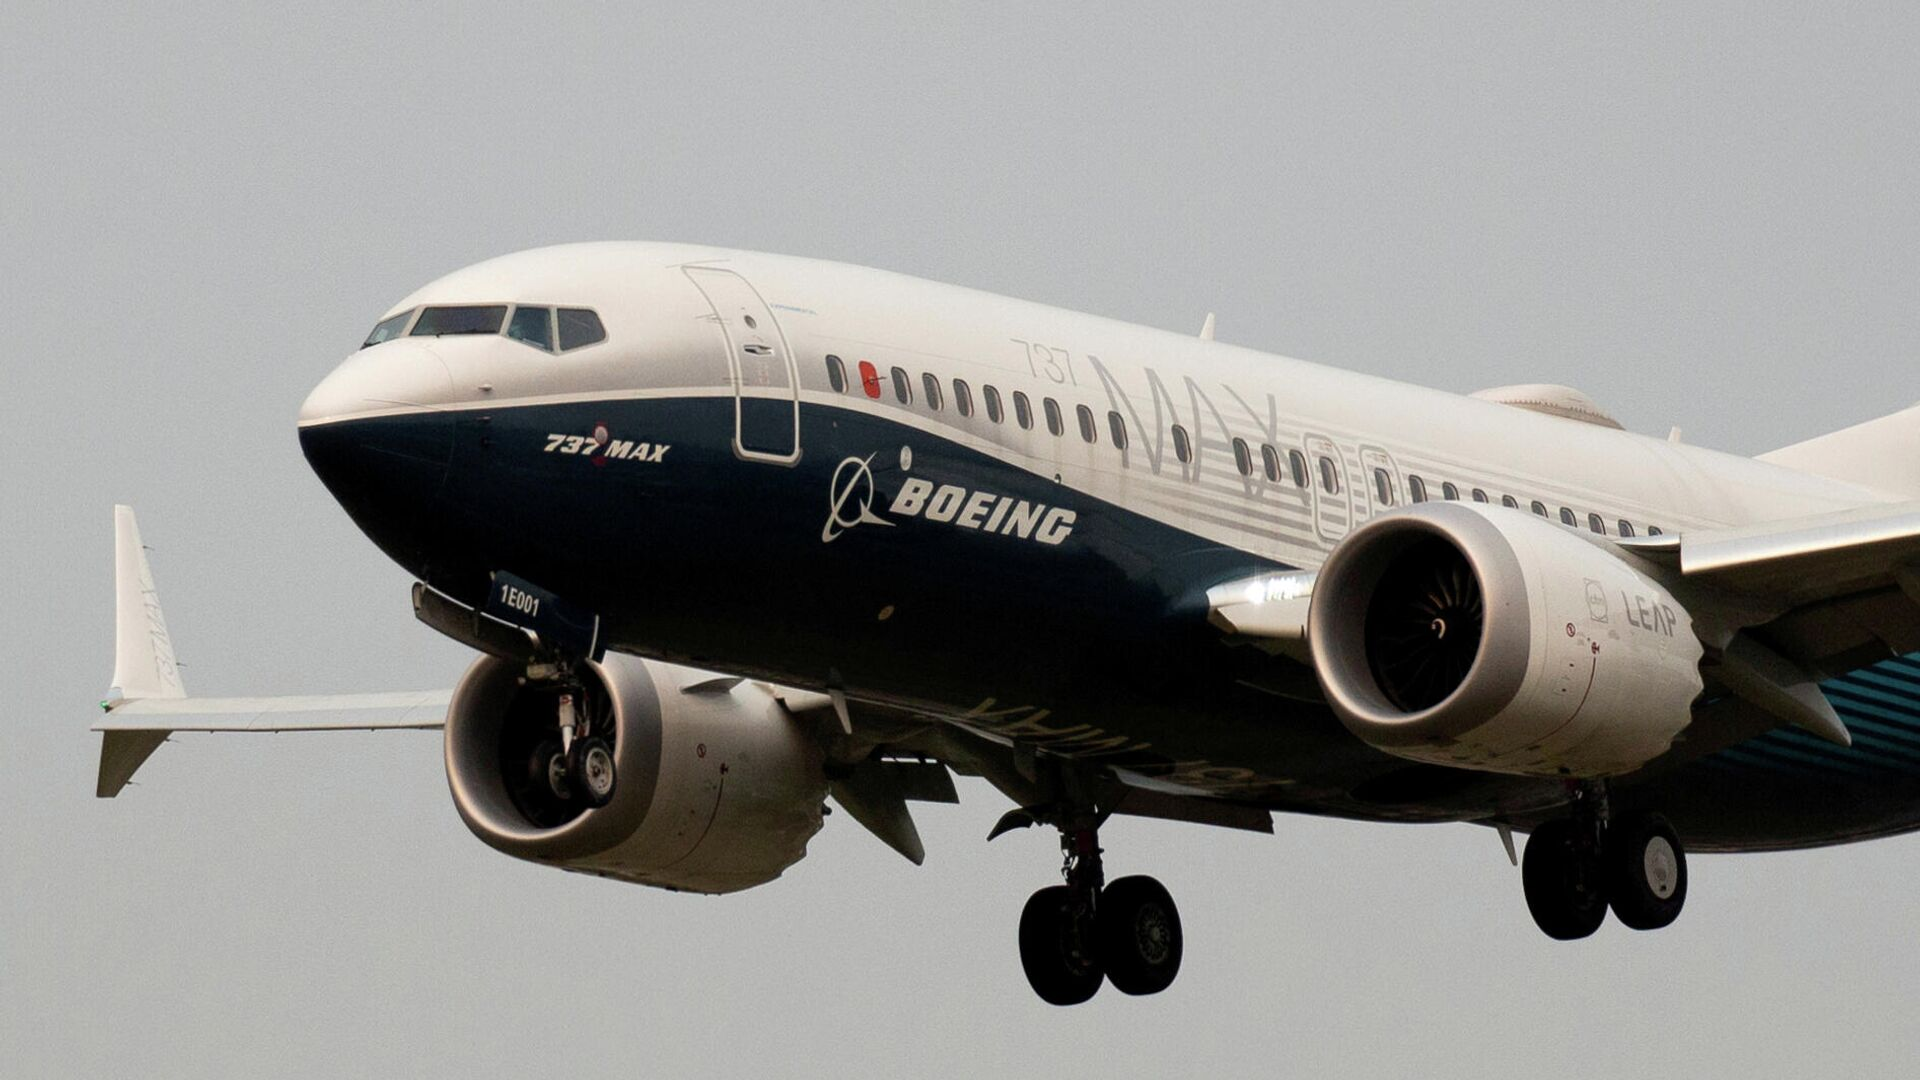 Boeing 737 Max - SNA, 1920, 26.12.2020